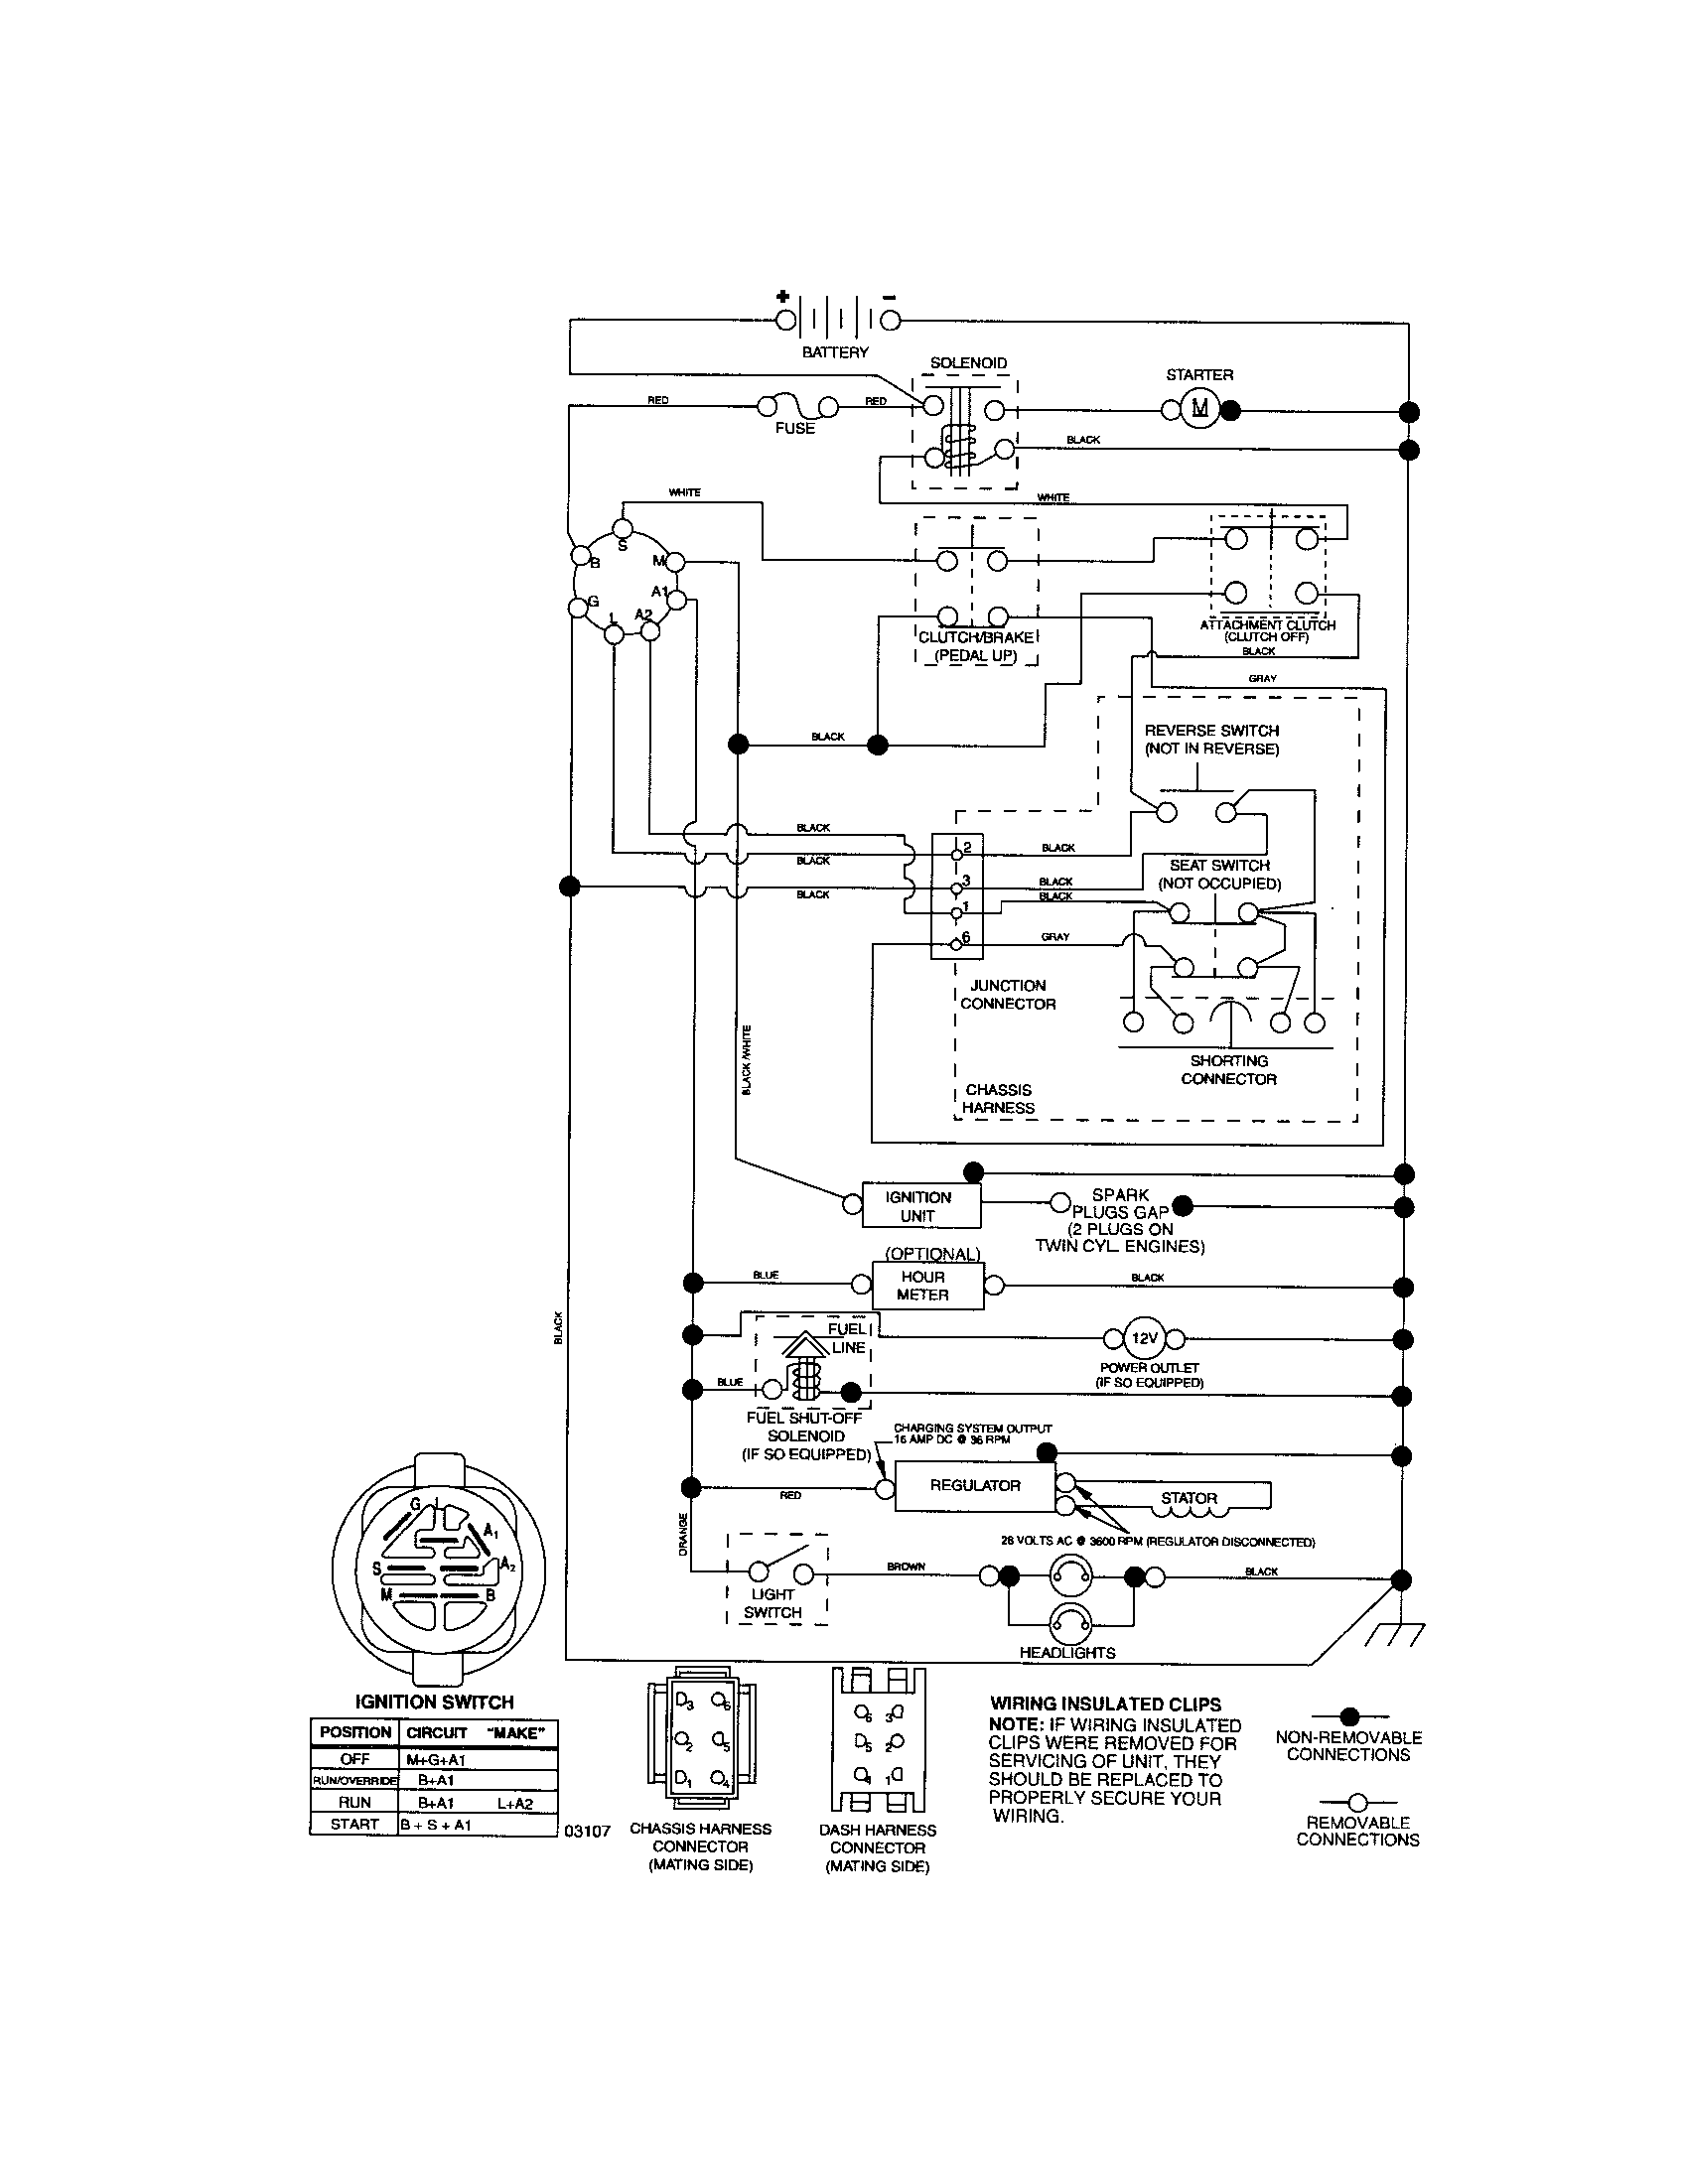 6af5f1447fd13c8443376822ddc1e105 craftsman riding mower electrical diagram wiring diagram Basic Lawn Tractor Wiring Diagram at alyssarenee.co